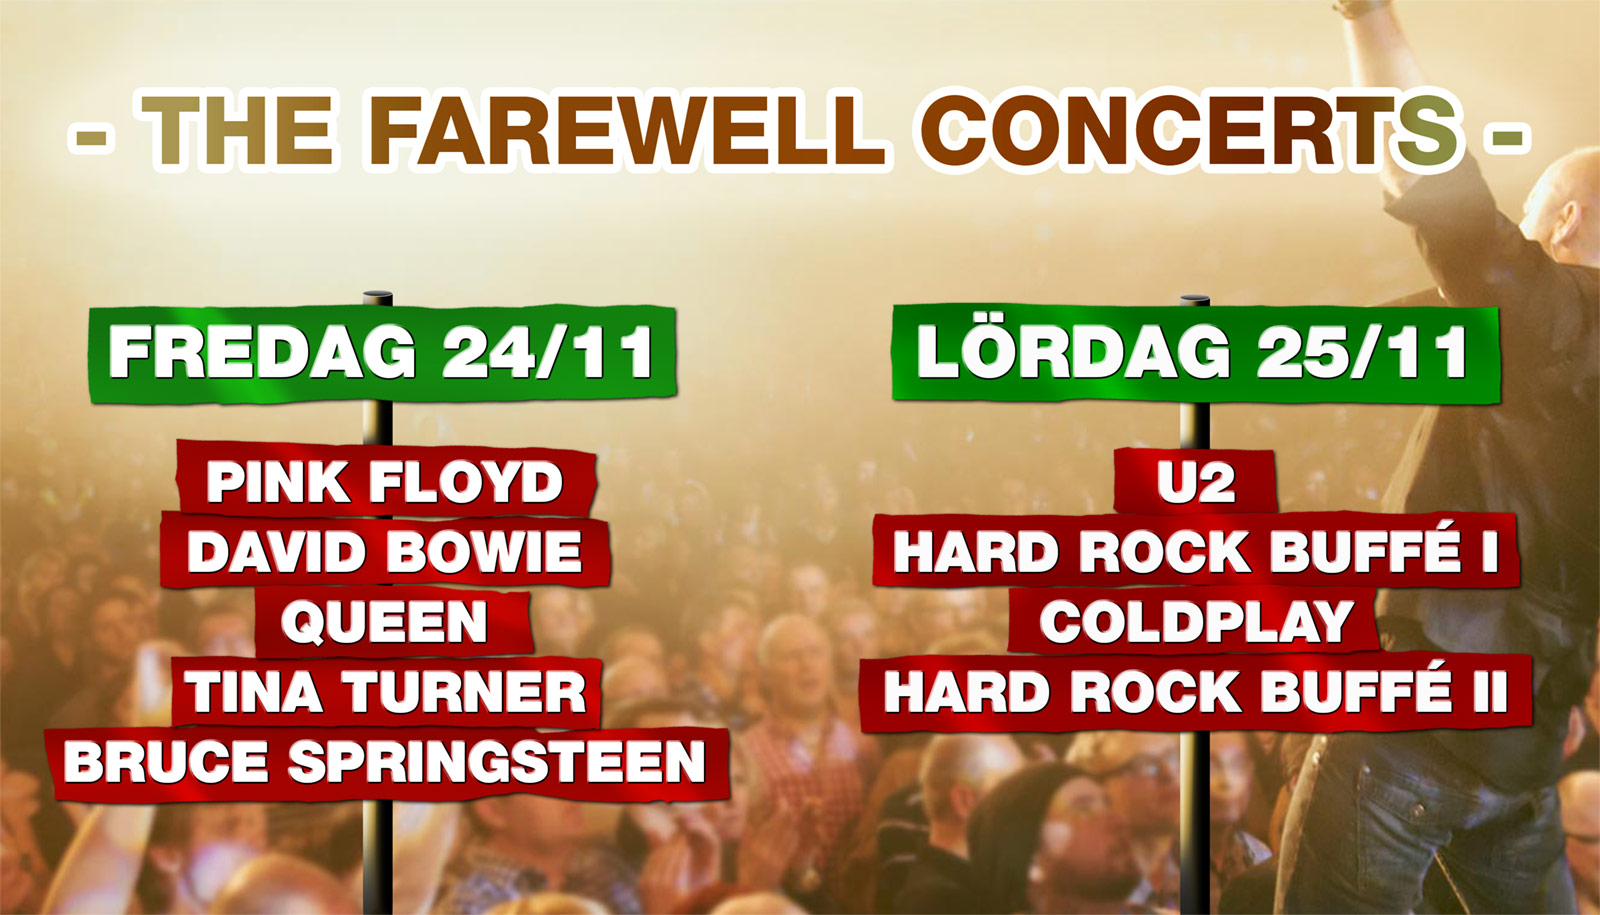 The farewell concerts GG